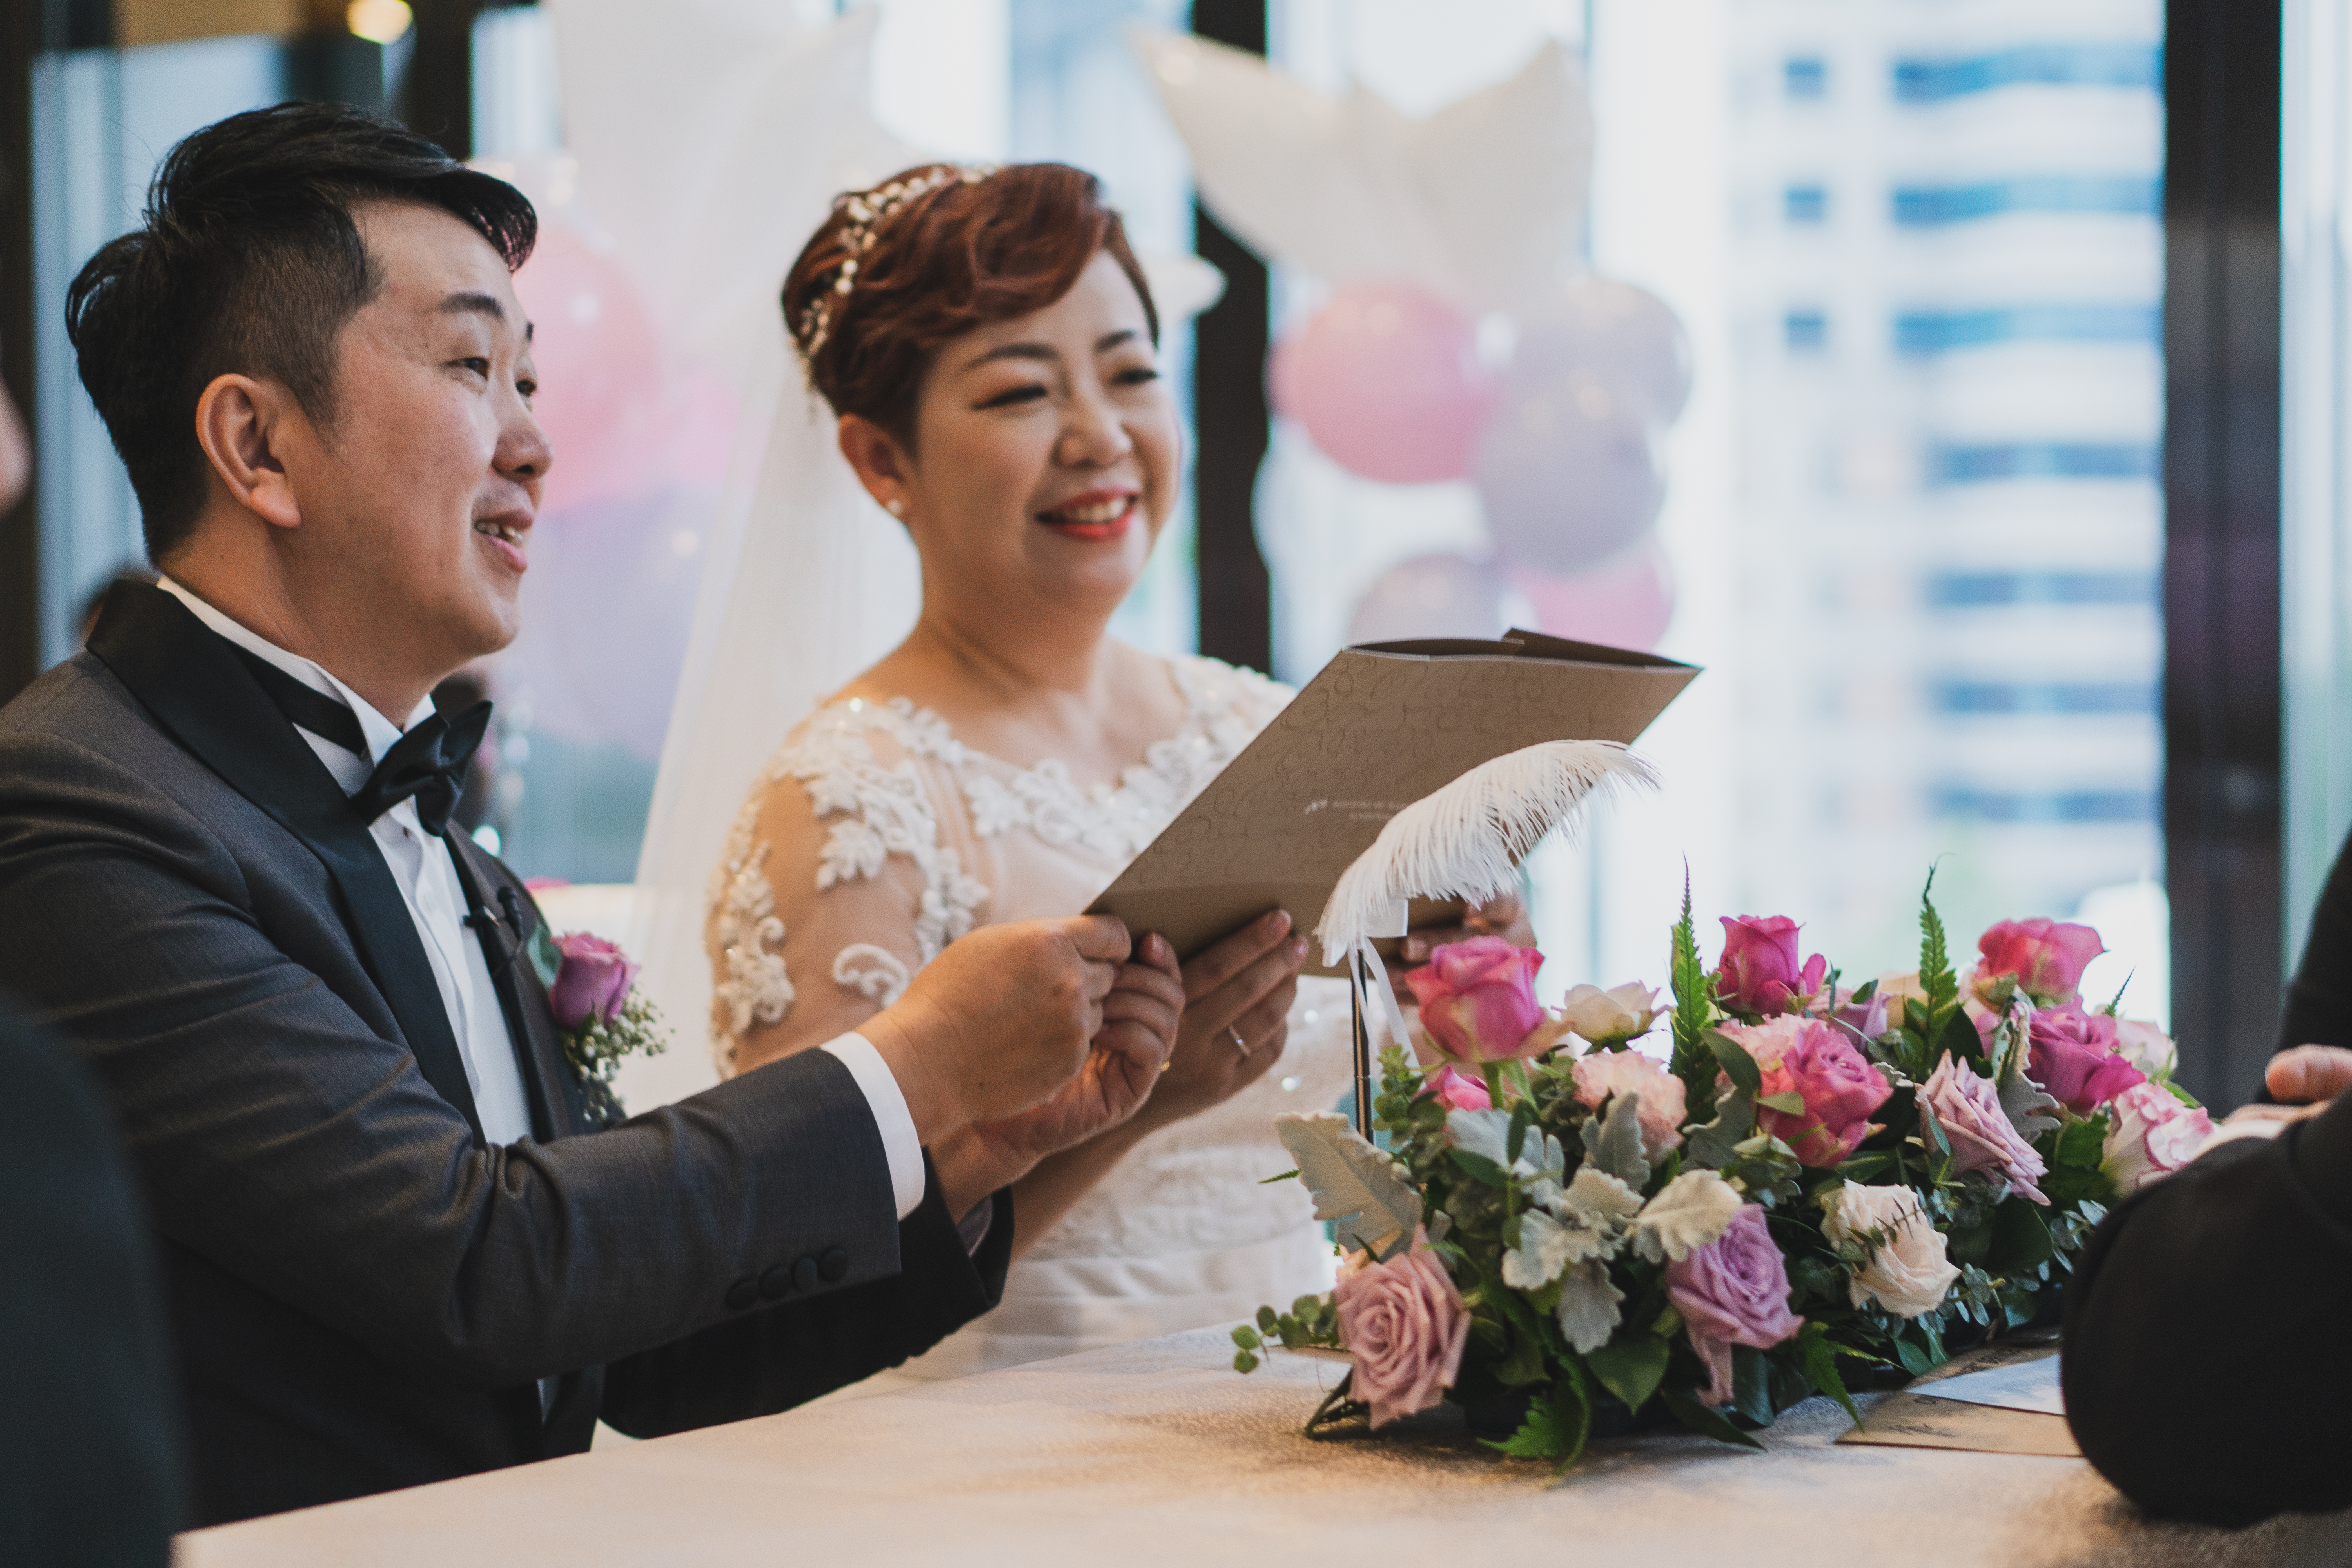 March in and march out at a wedding in Sofitel City Centre Hotel at Tanjong Pagar